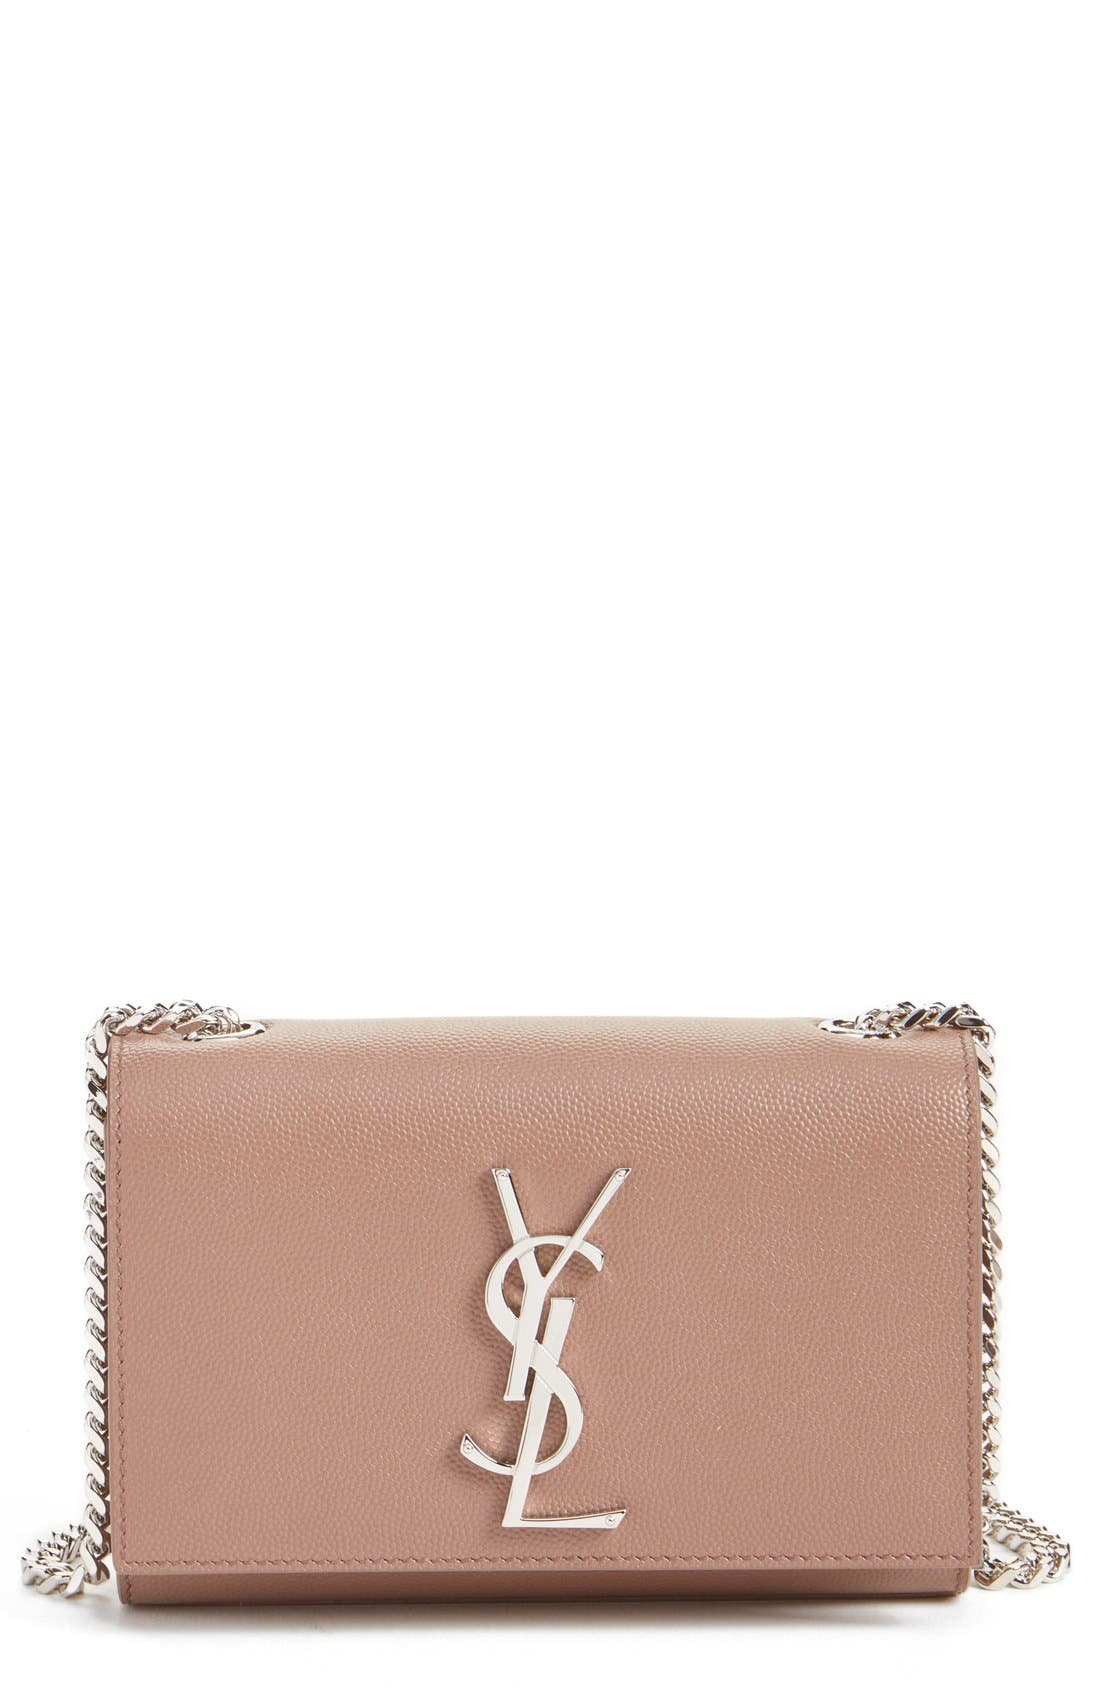 Main Image - Saint Laurent 'Small Monogram' Leather Crossbody Bag